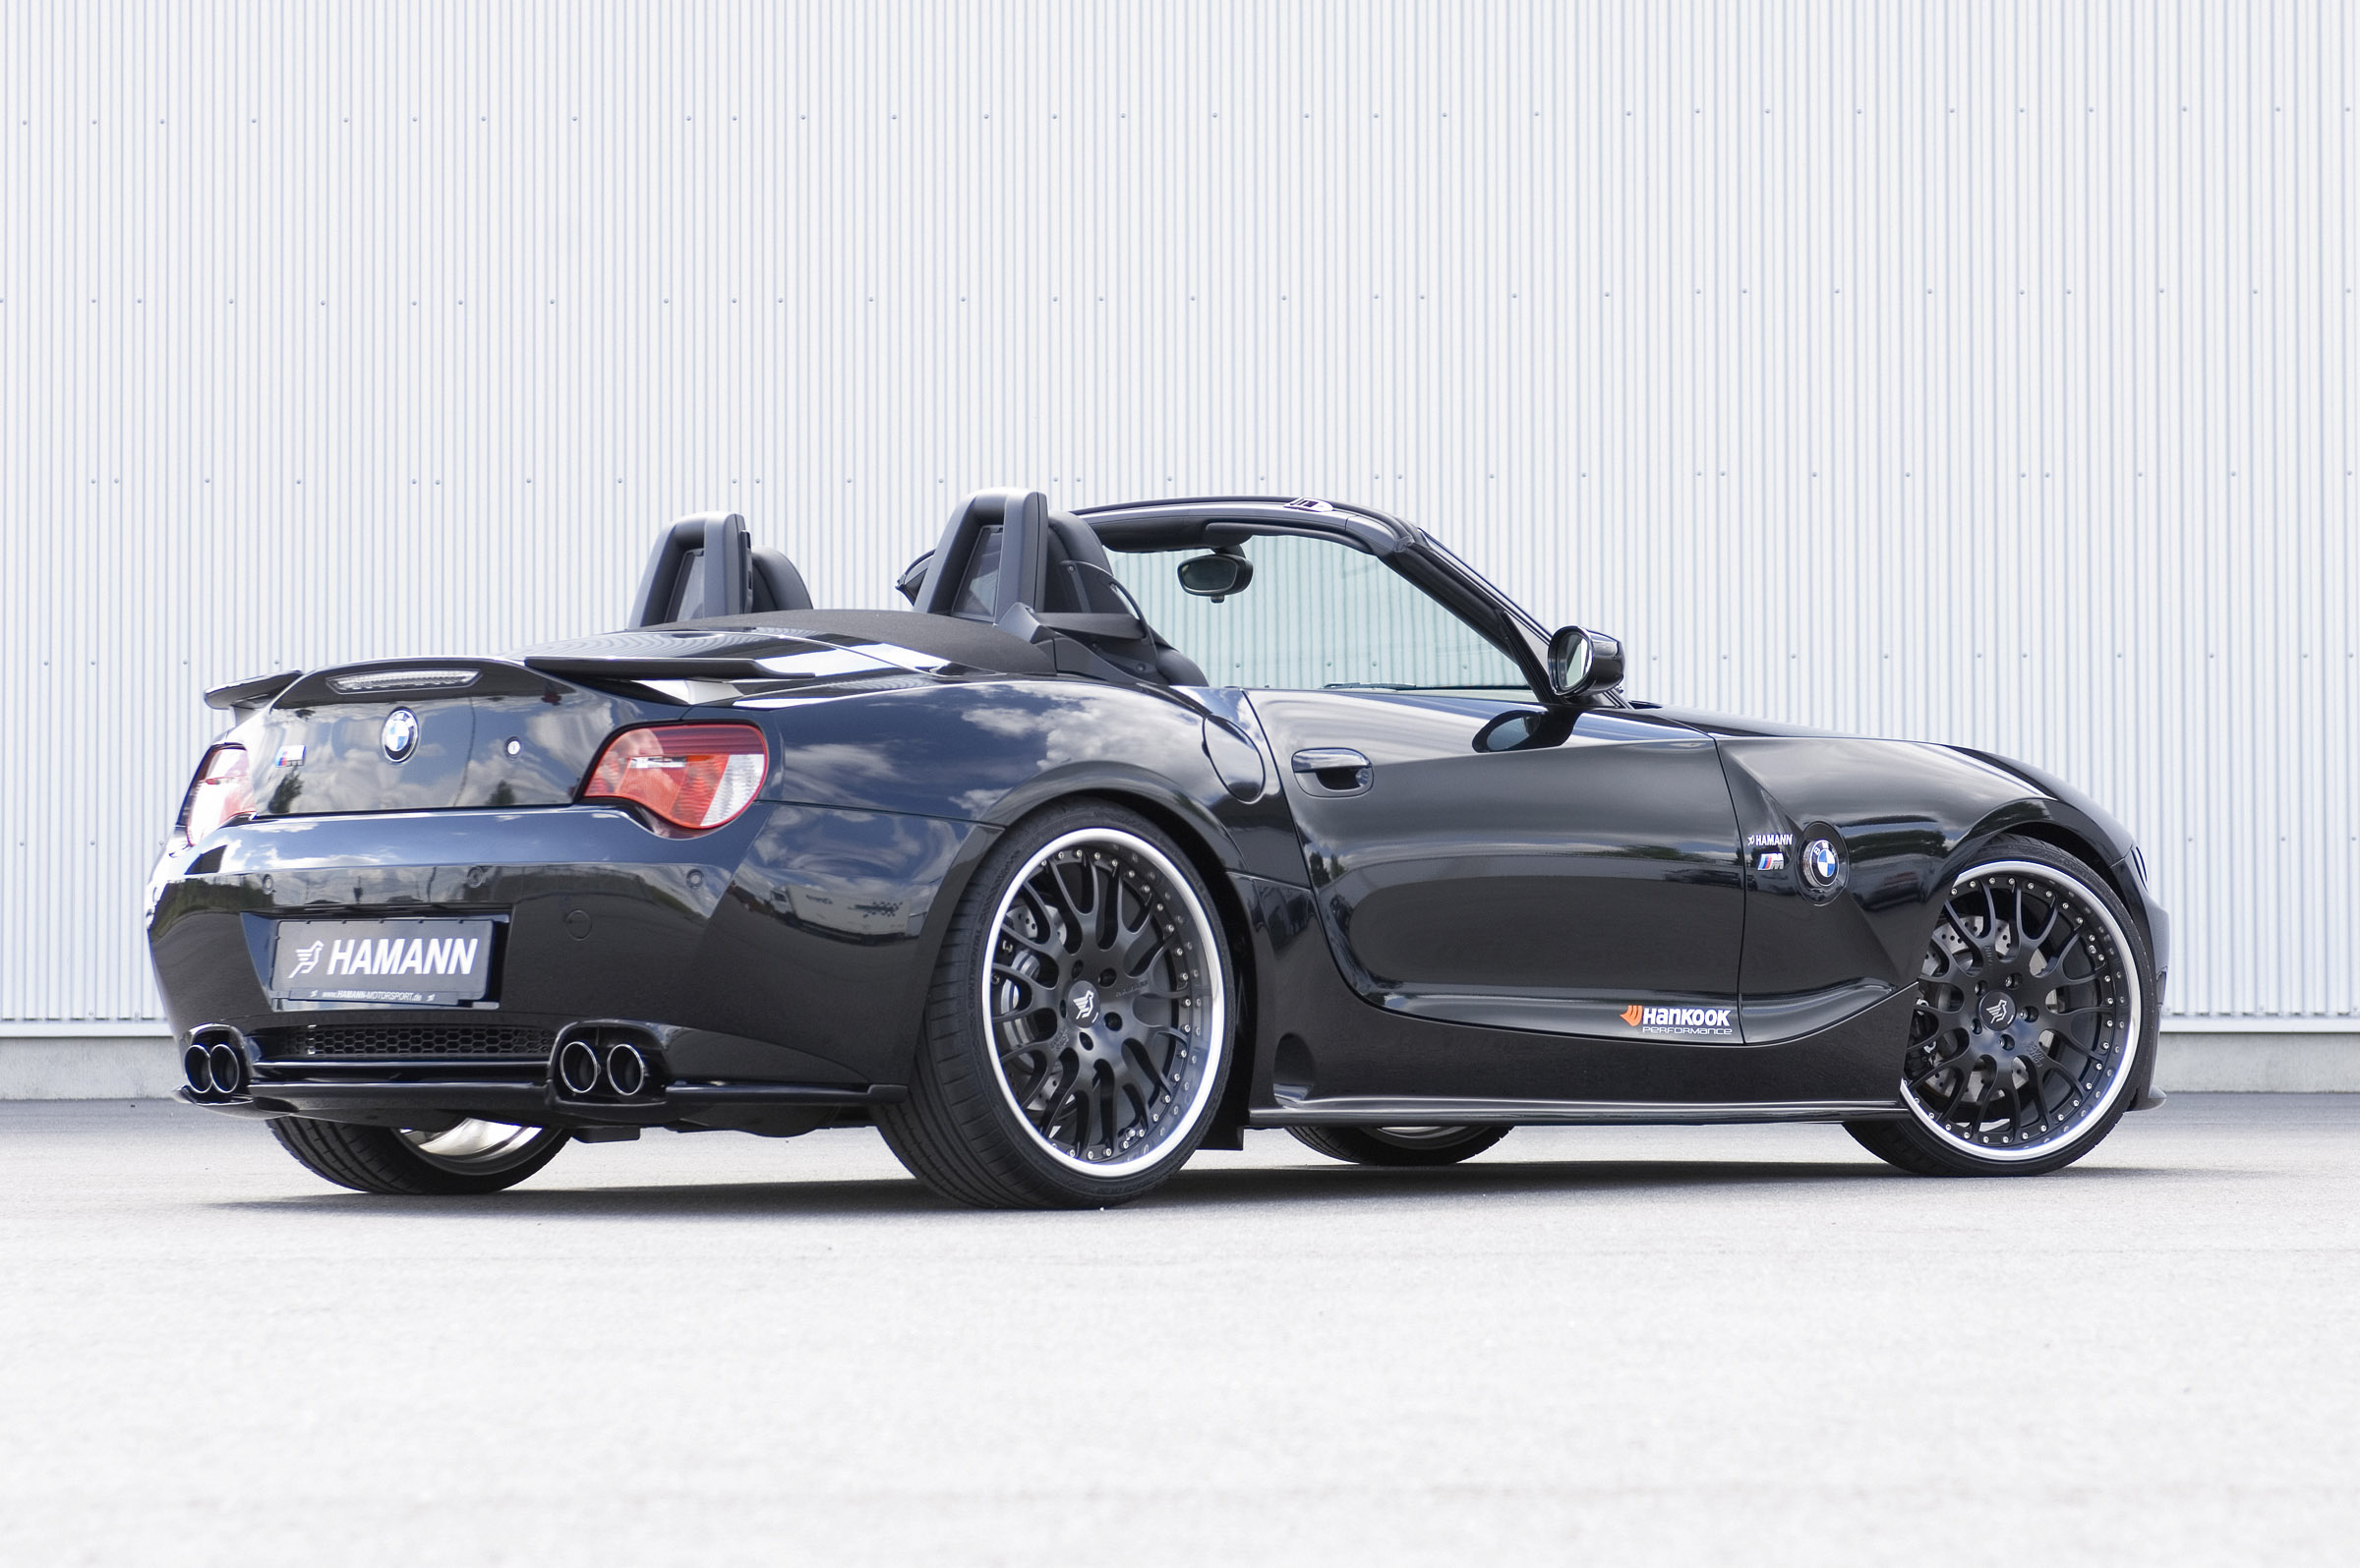 Hamann Bmw Z4 M Roadster Picture 17107